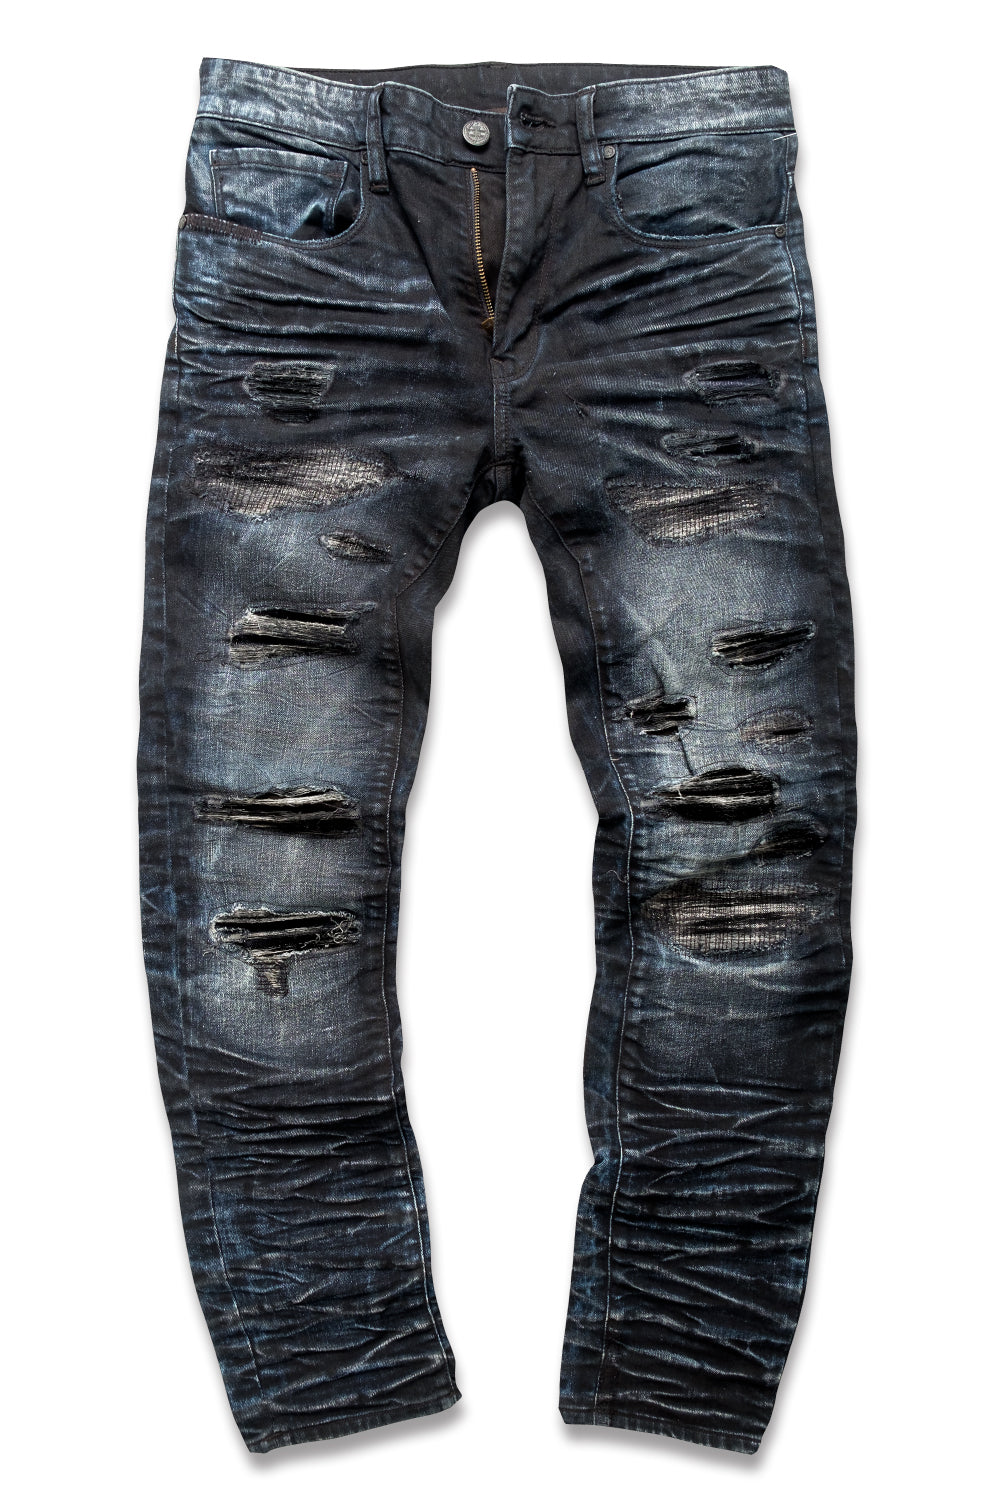 Jordan Craig - Aaron - War Report Denim